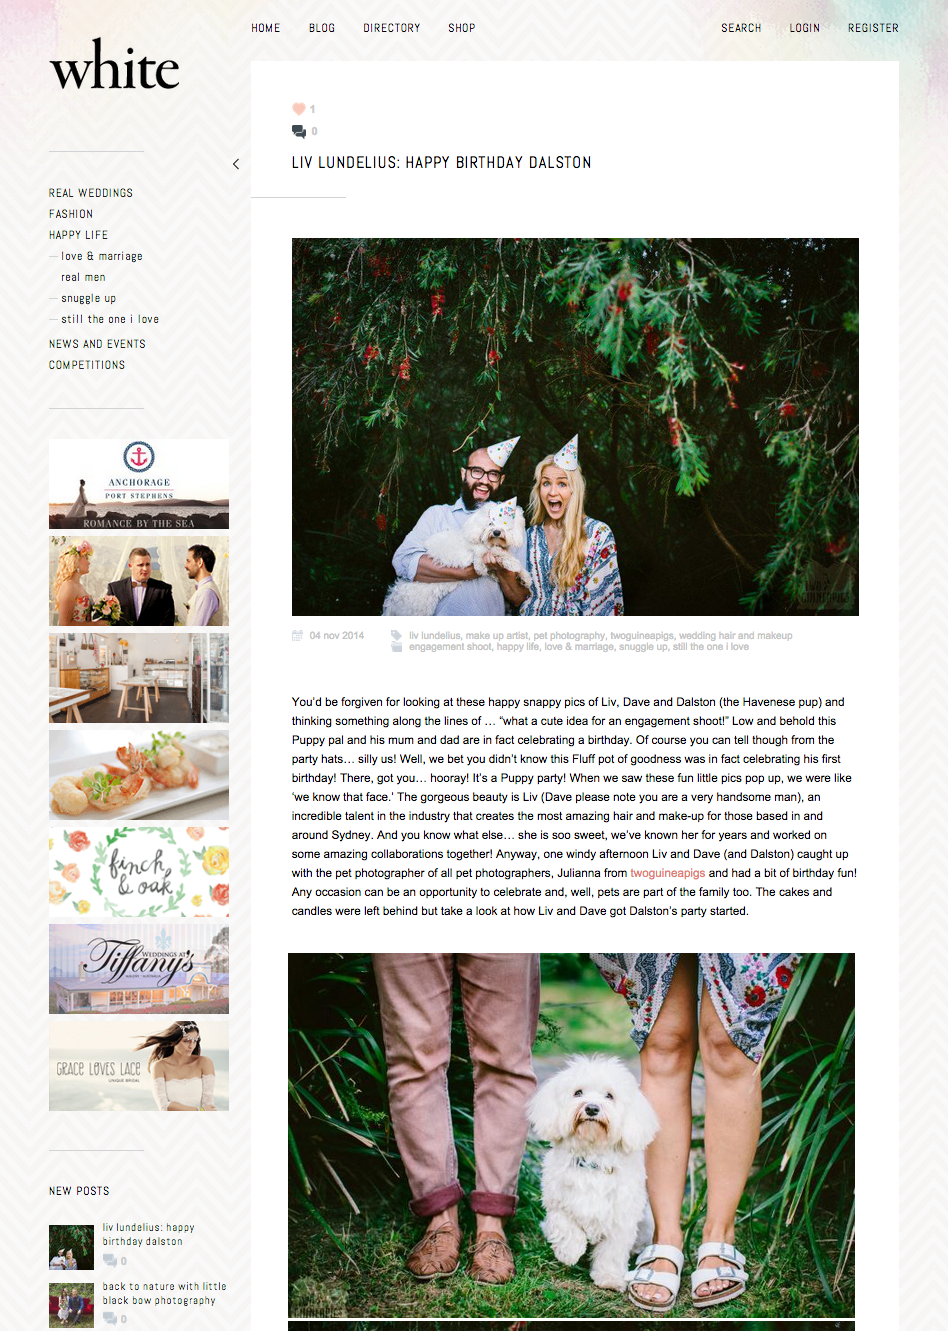 twoguineapigs_pet_photography_dalston_havanese_birthday_shoot_puppy_liv_lundelius_white_magazine_feature